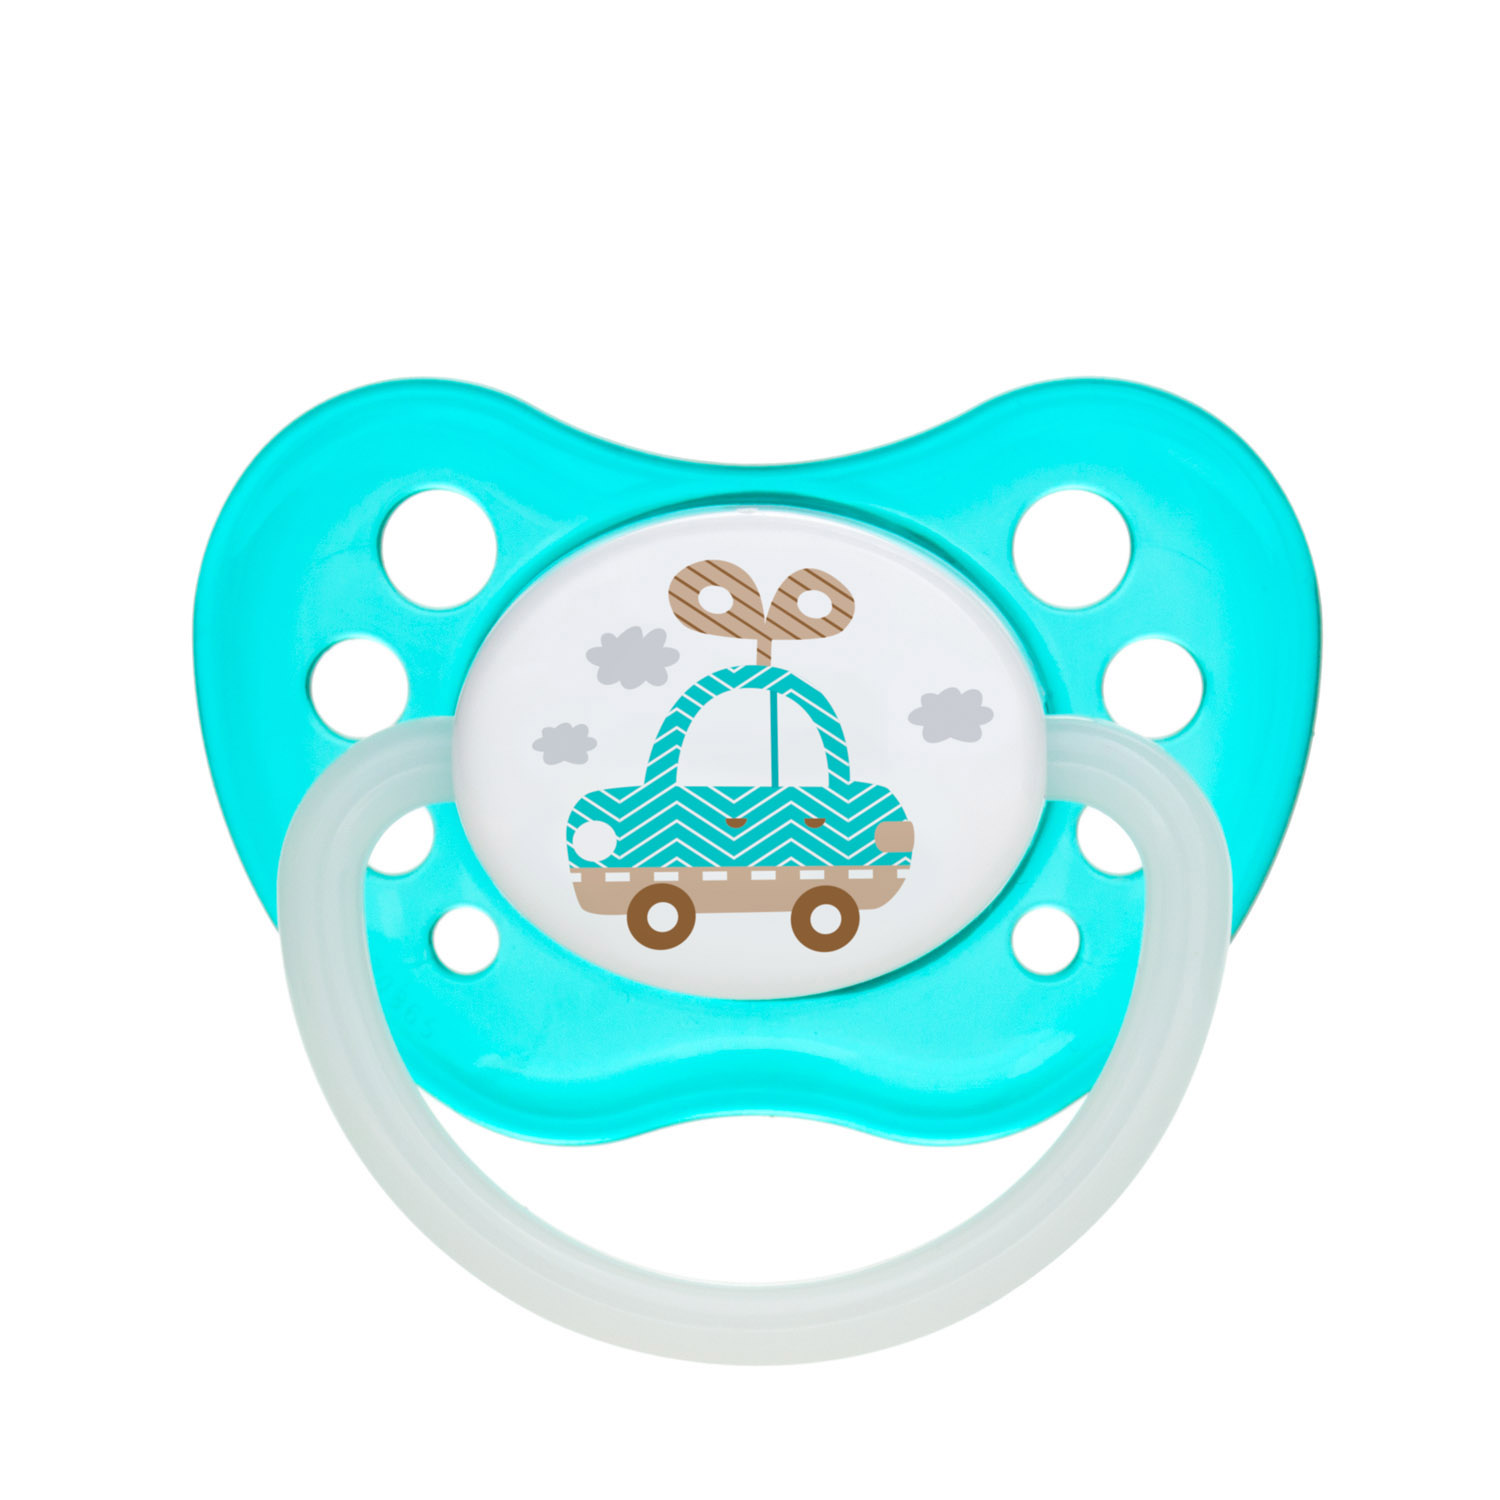 Canpol babies Silicone Orthodontic Soother 0-6m TOYS turquoise